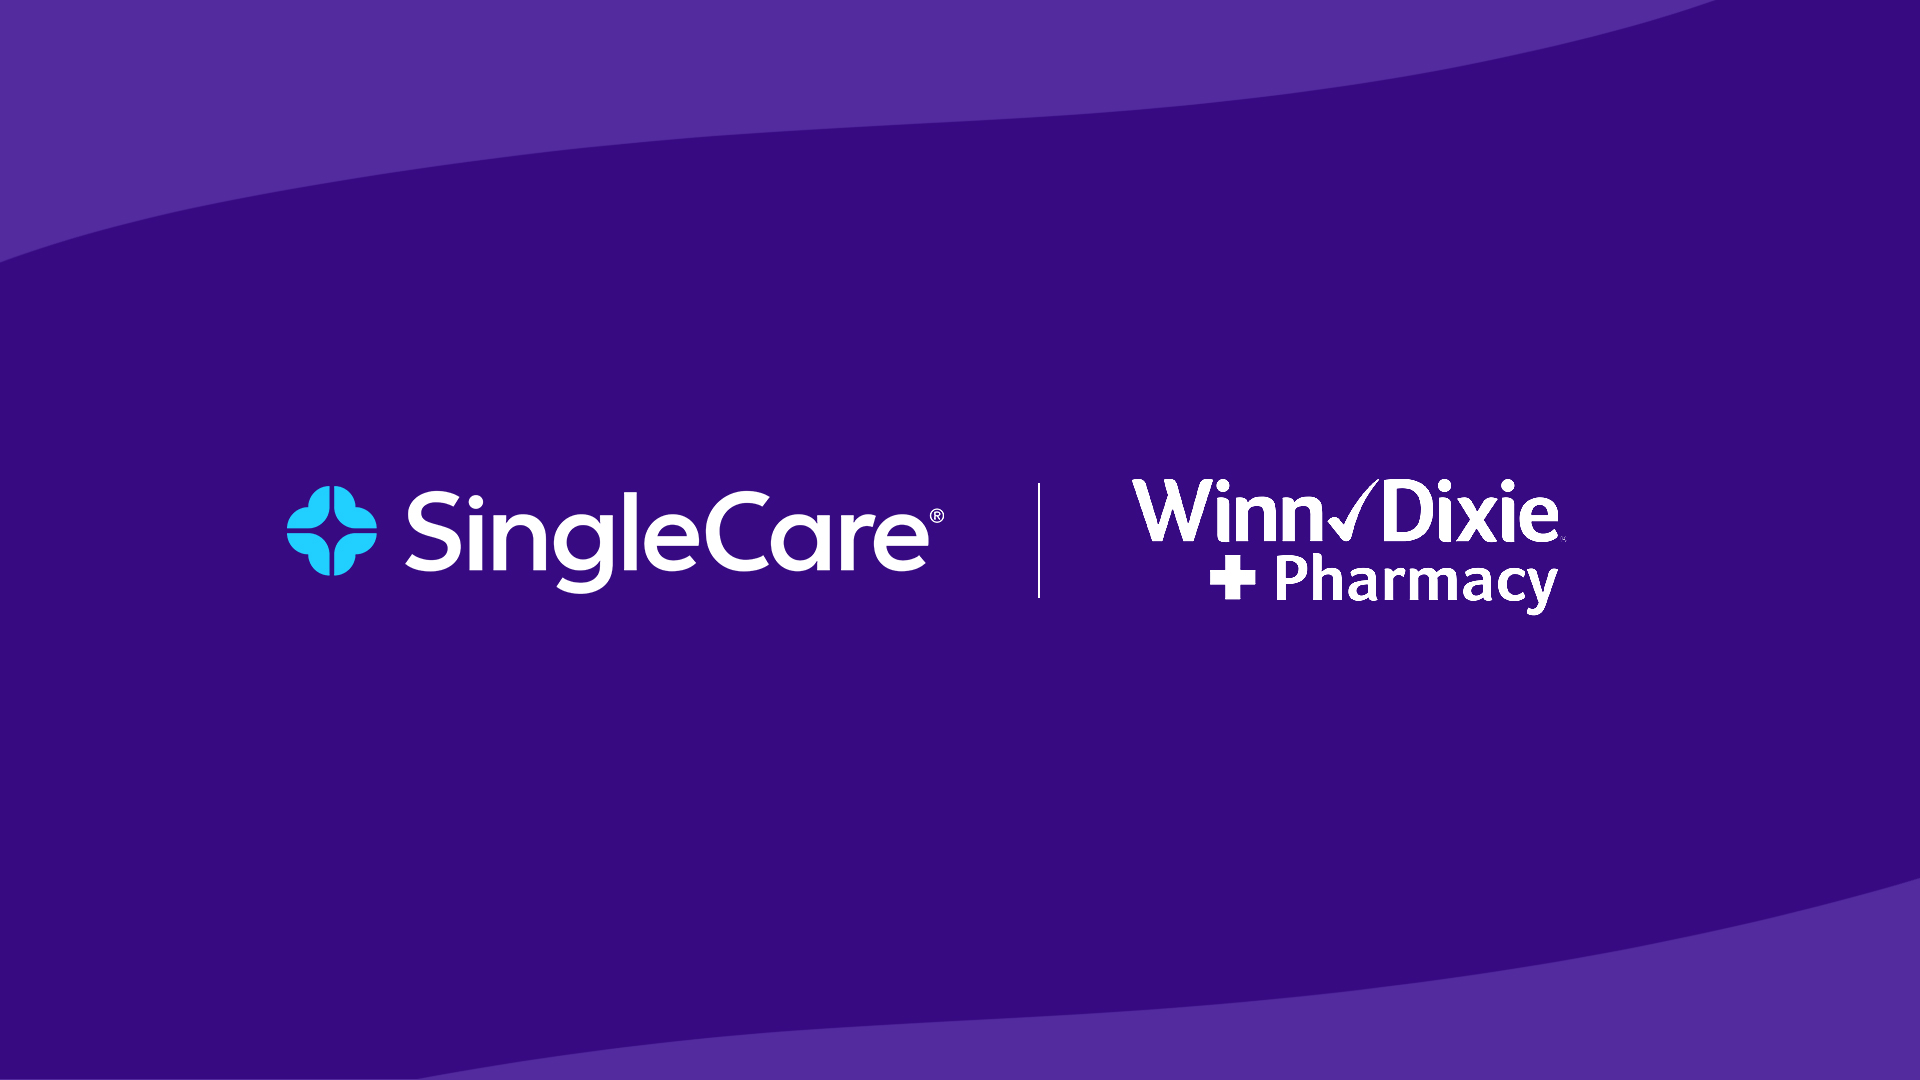 SingleCare savings are now available at Winn-Dixie